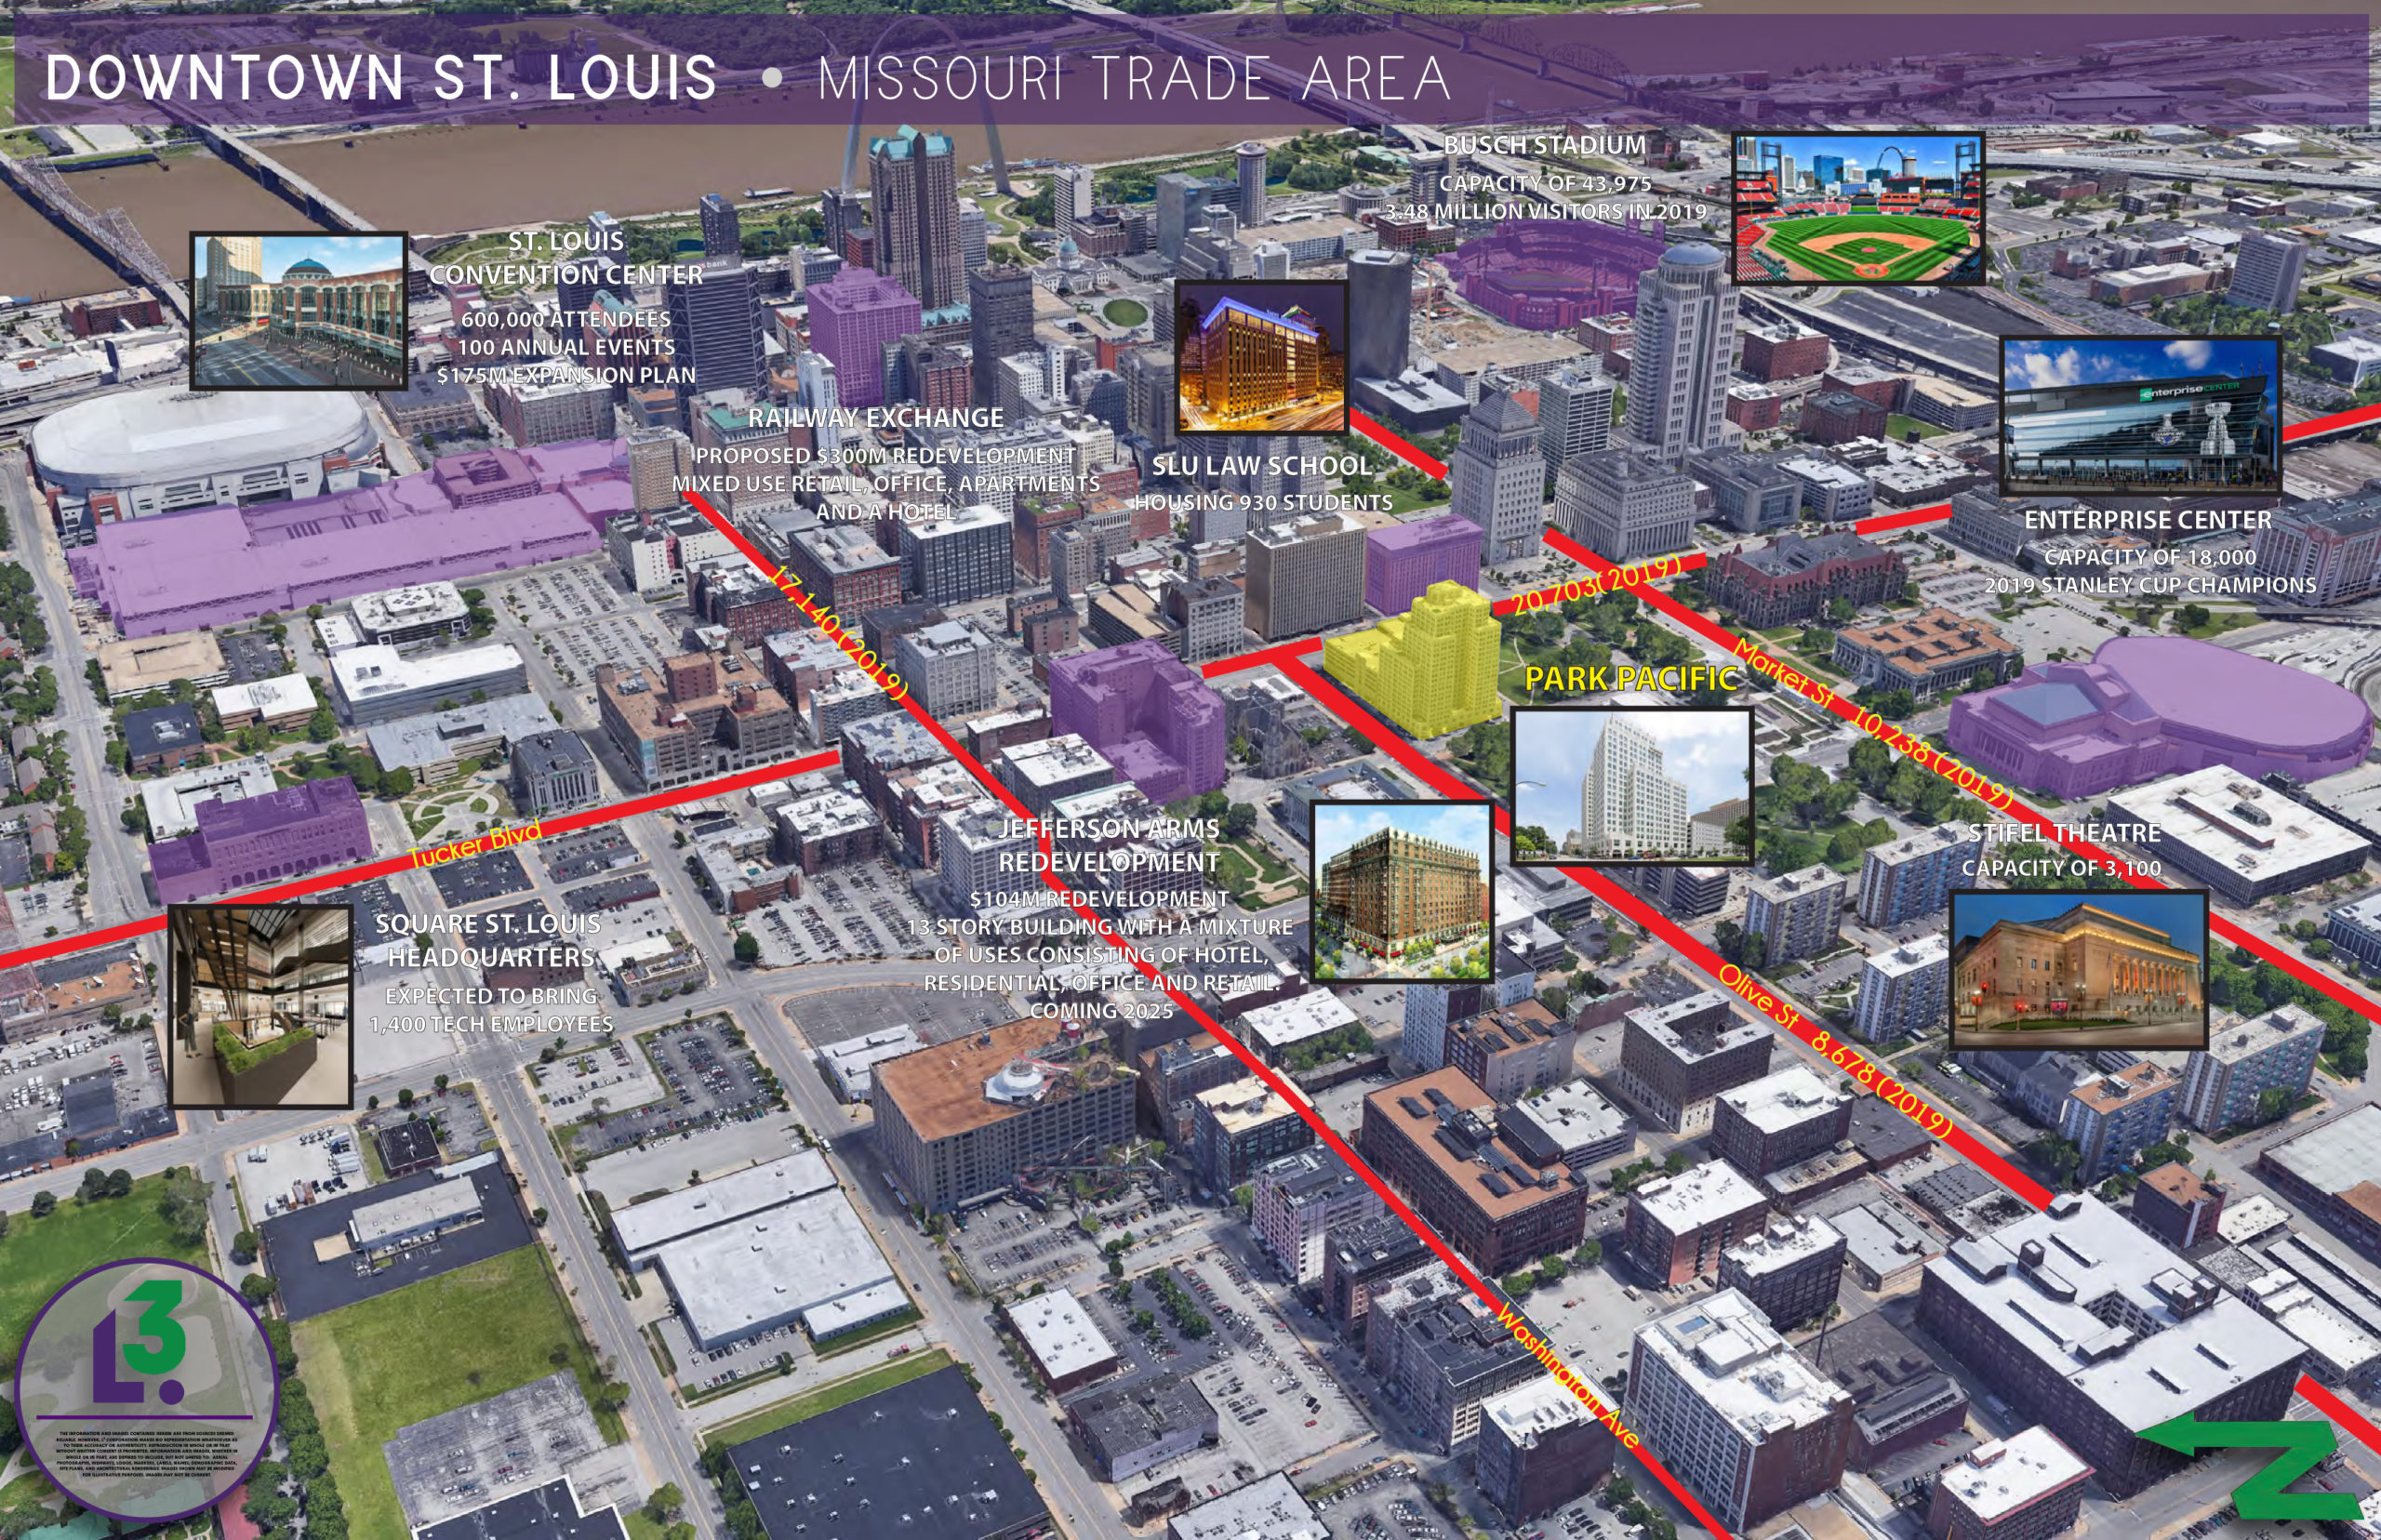 DOWNTOWN ST LOUIS AERIAL